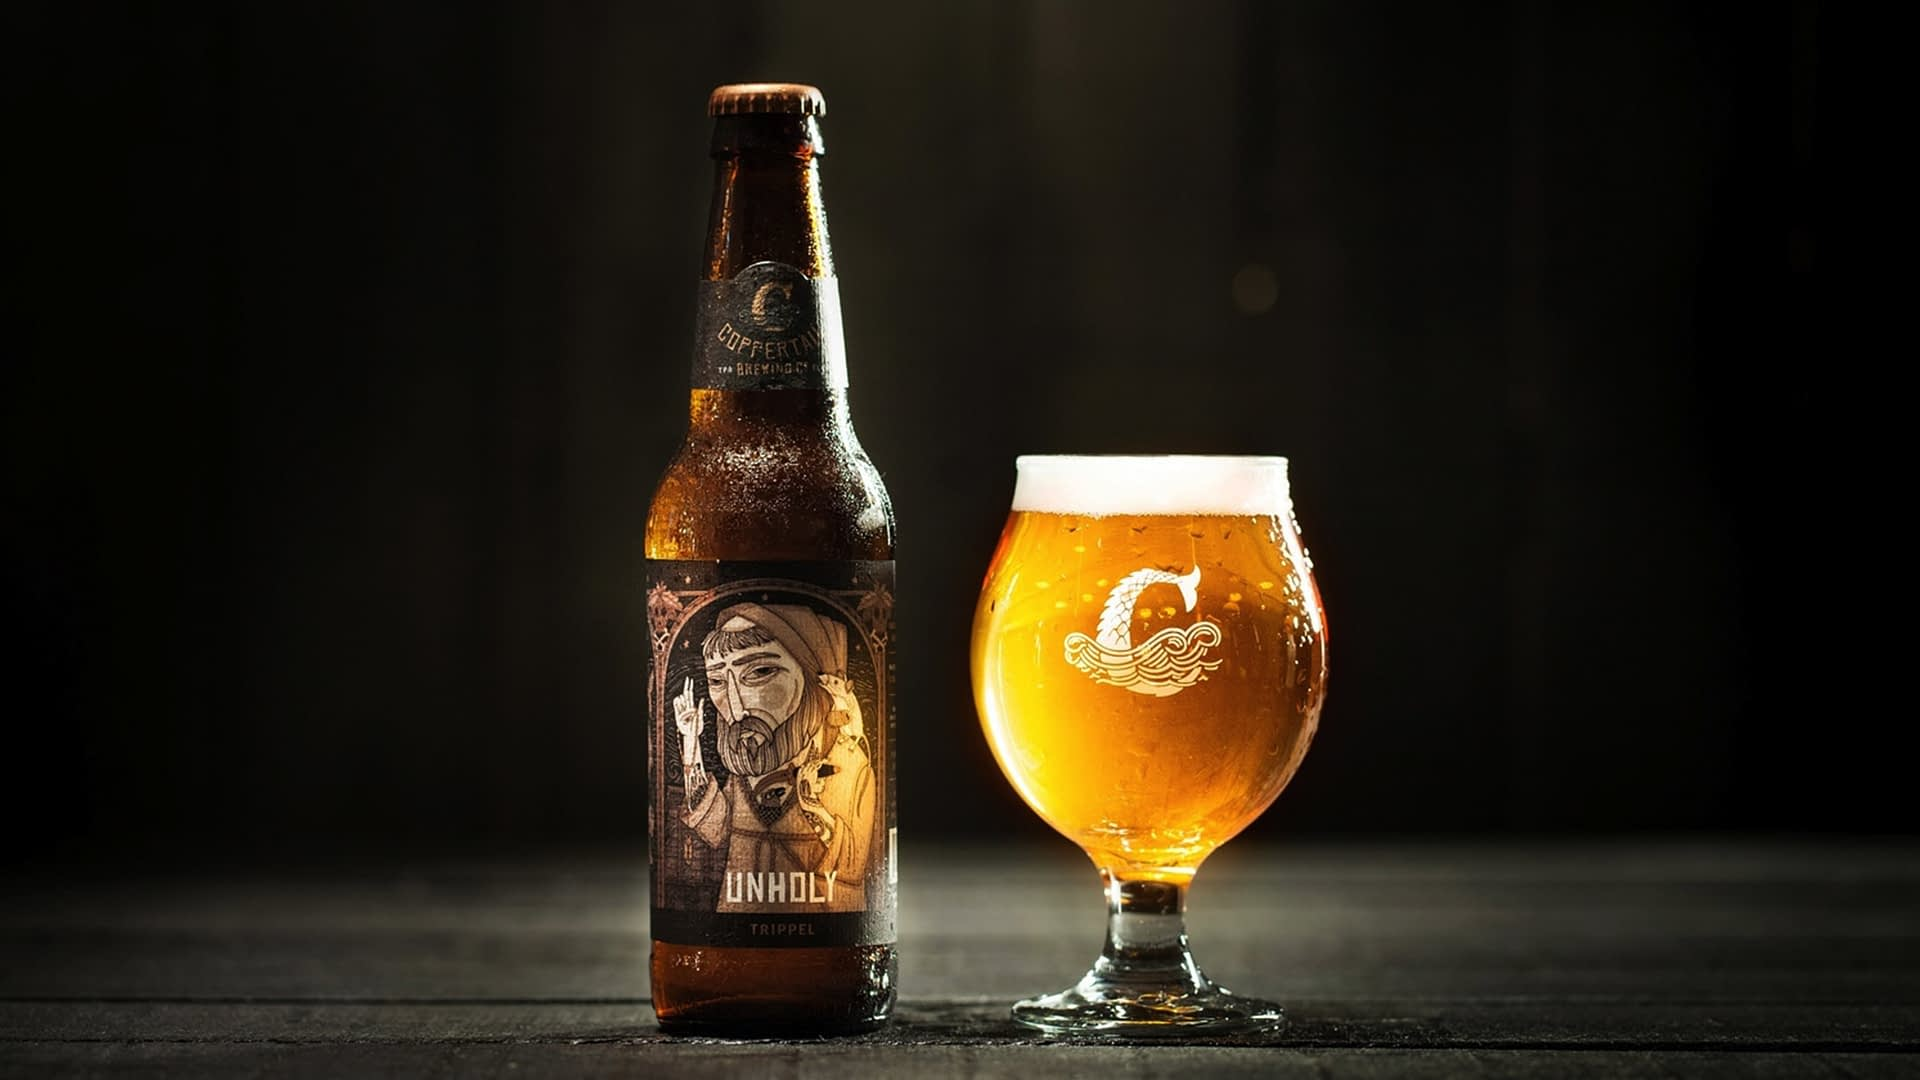 A bottle and a glass of Coppertail's Trippel Unholy beer.